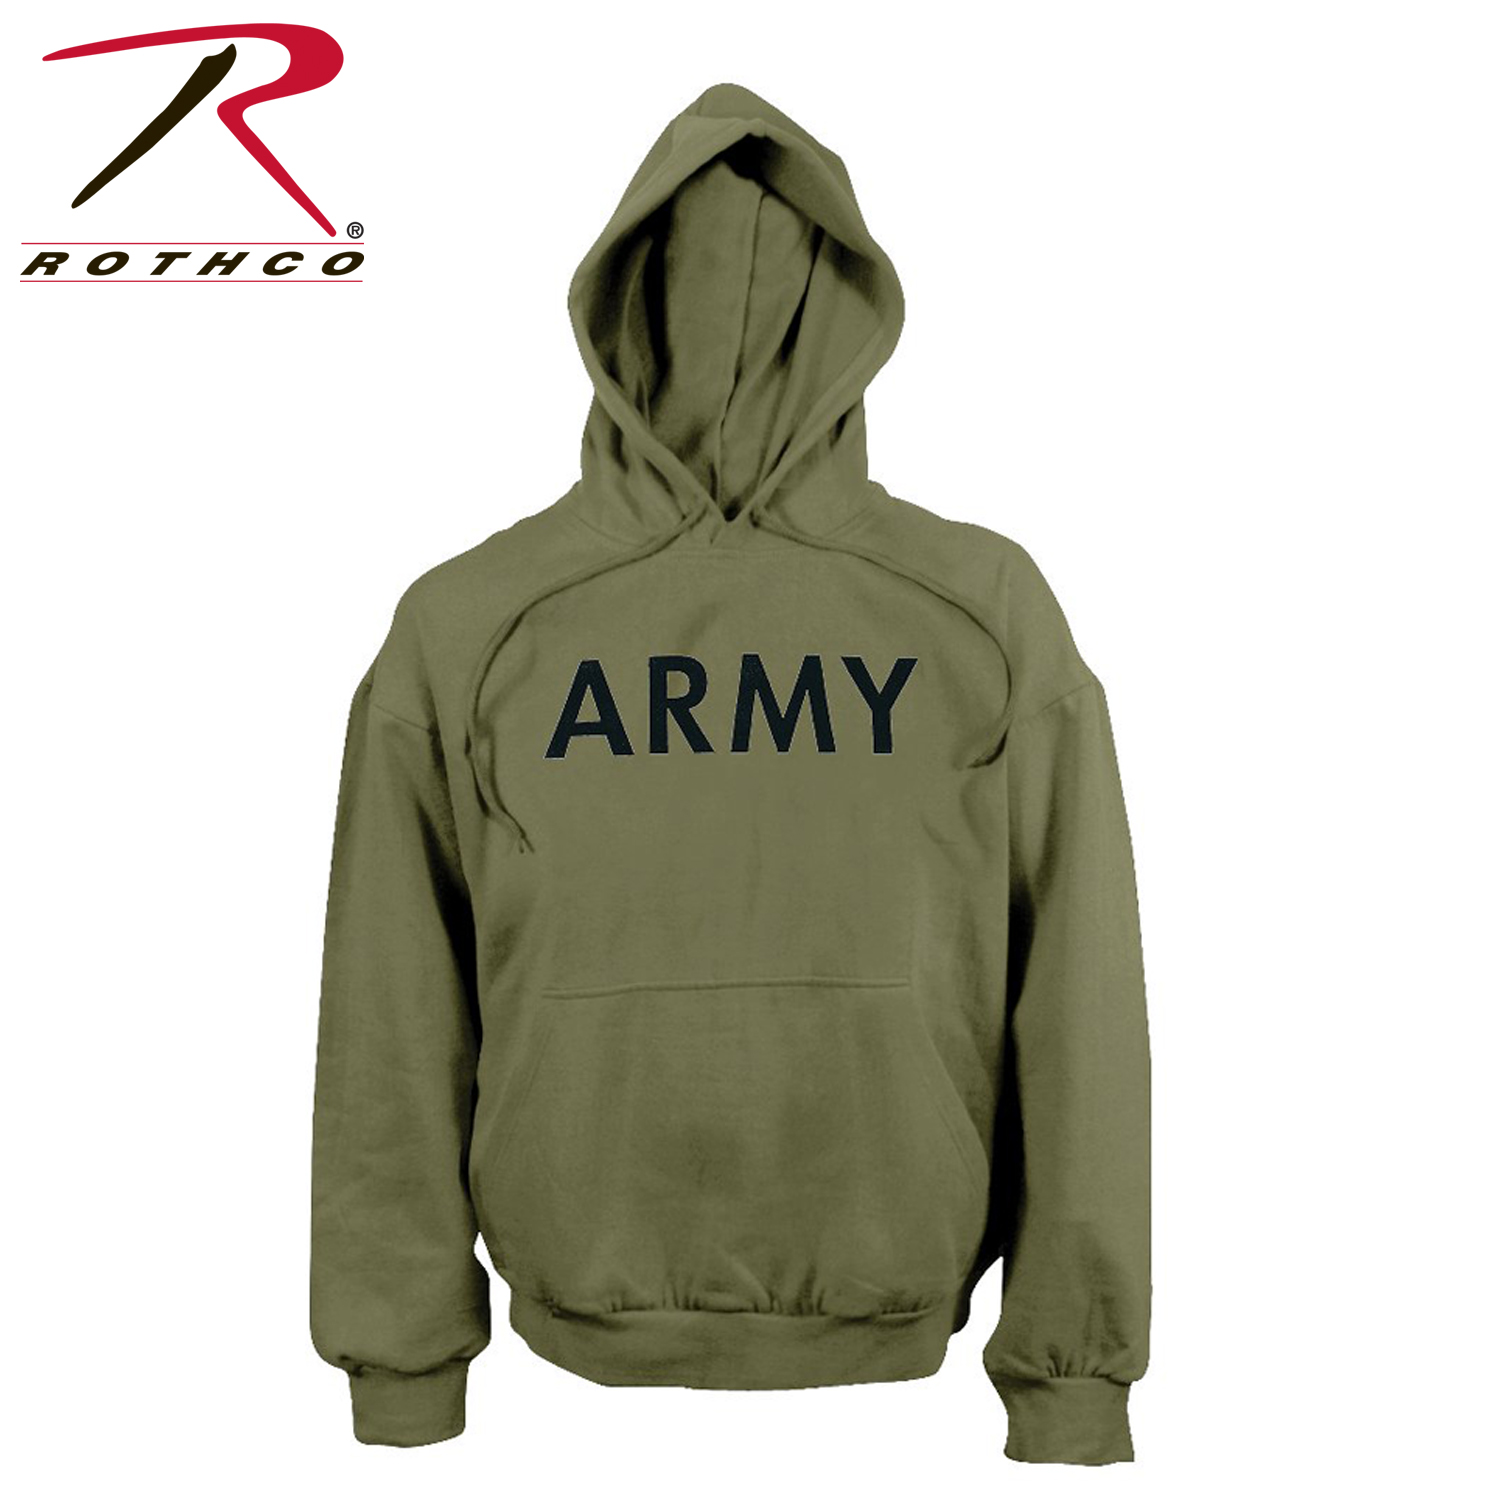 6907cf1b ... army hooded sweatshirt, army pullover. Loading zoom